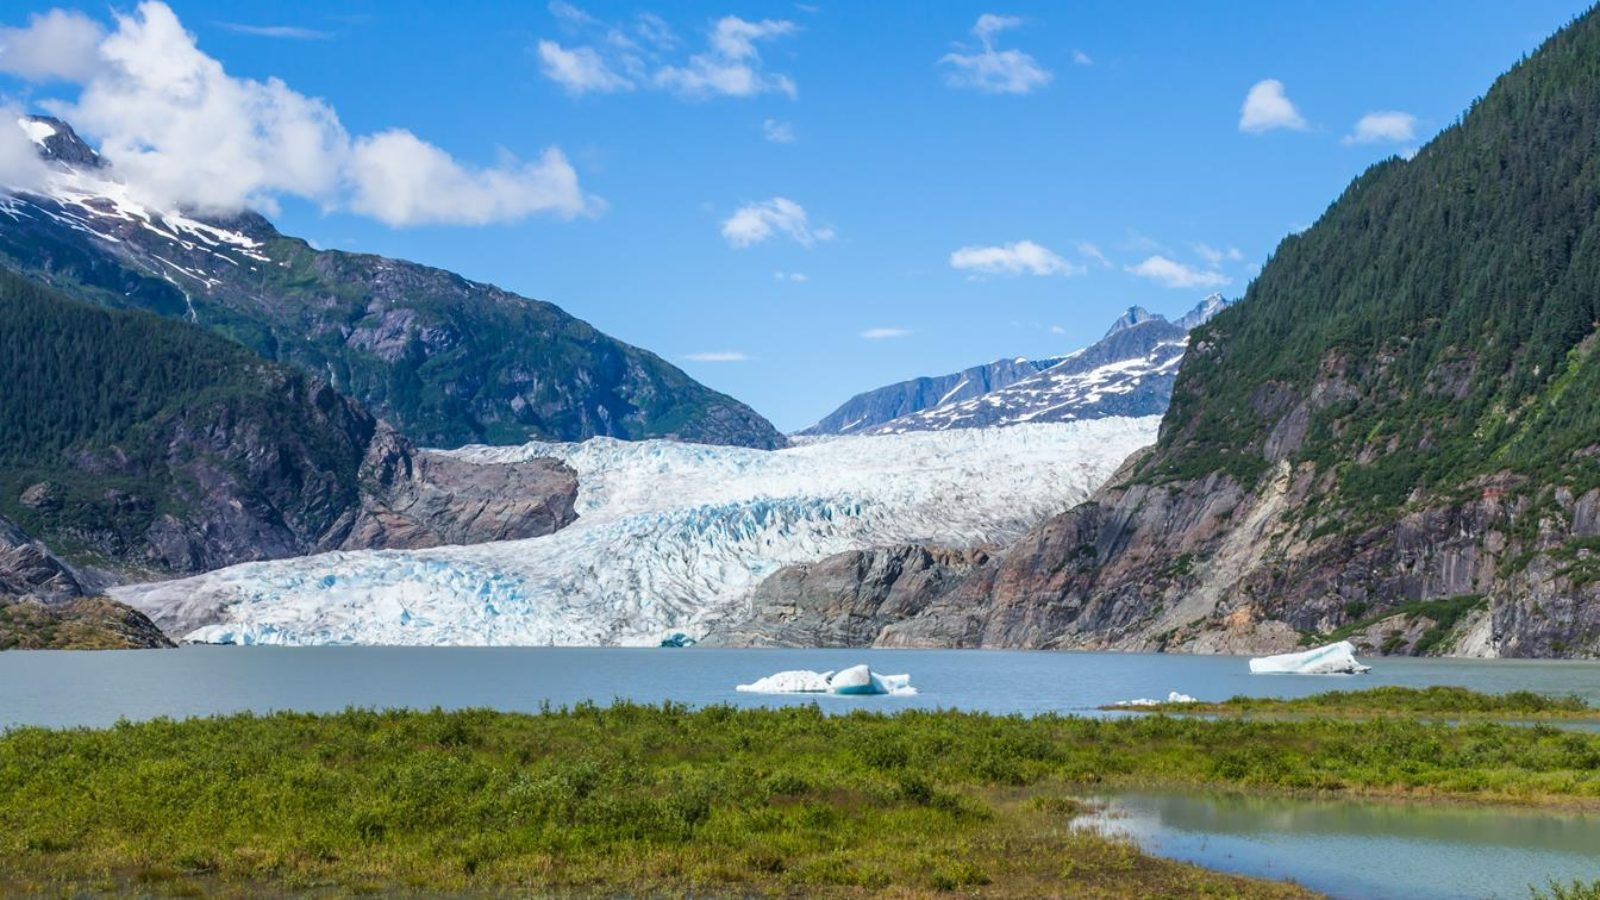 Mendenhall Glacier and Lake in Juneau, Alaska, USA in summer